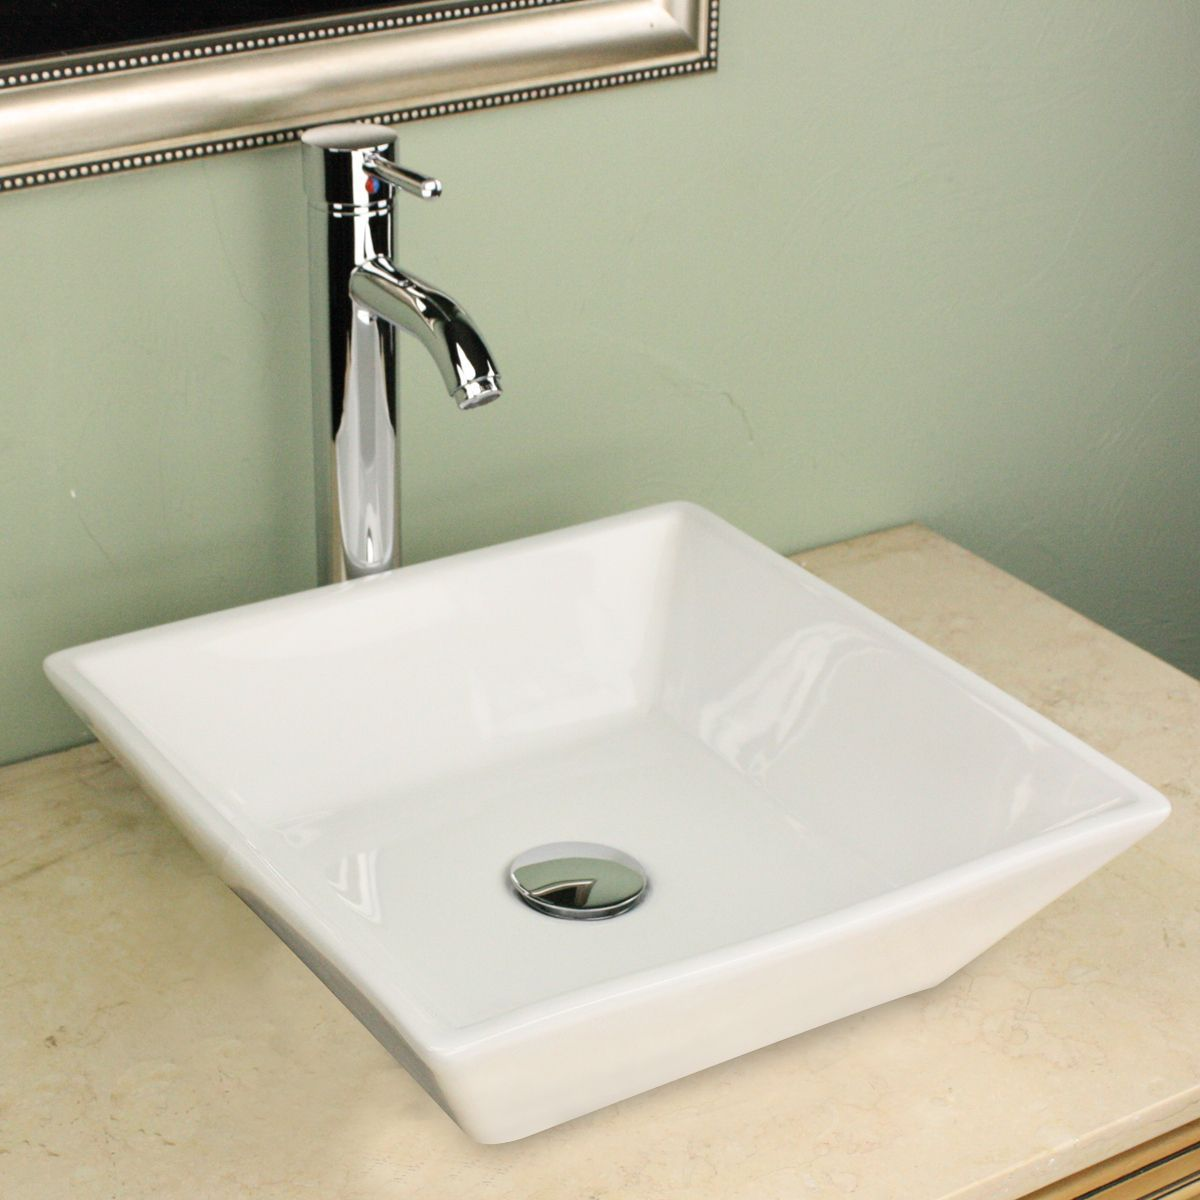 Highpoint Collection 16 Inch Square White Vessel Sink With Faucet